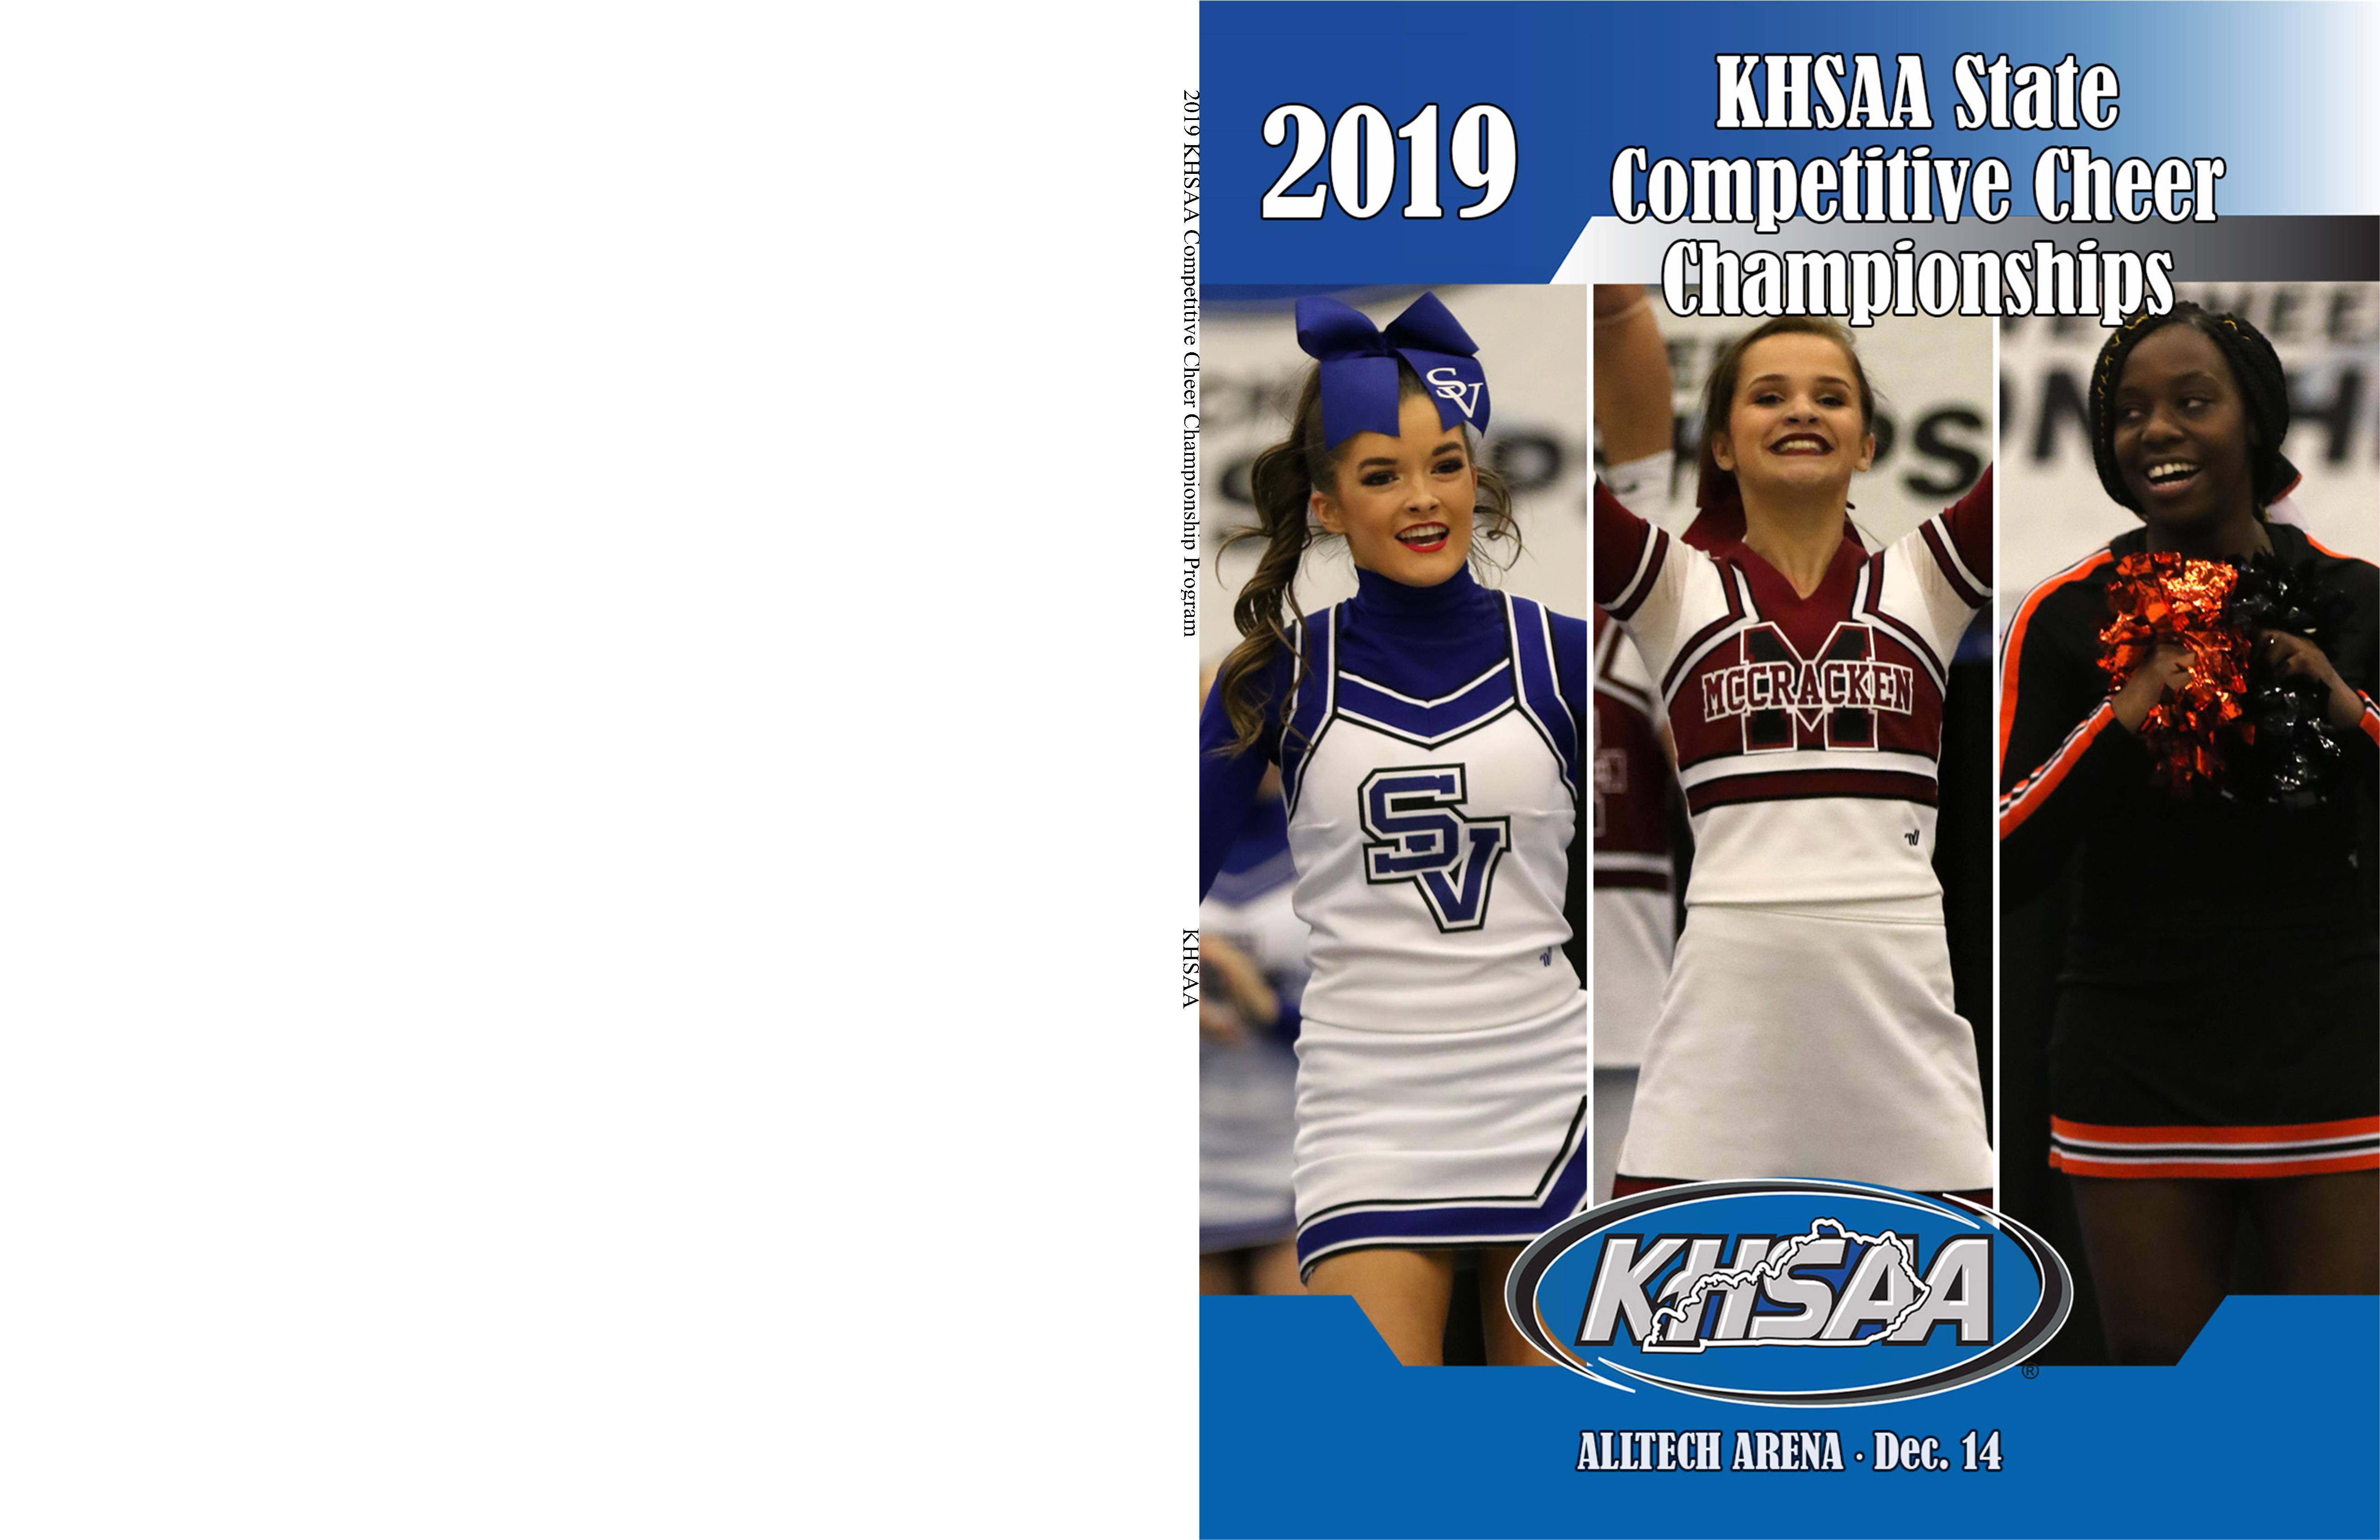 2019 KHSAA Competitive Cheer Championship Program cover image